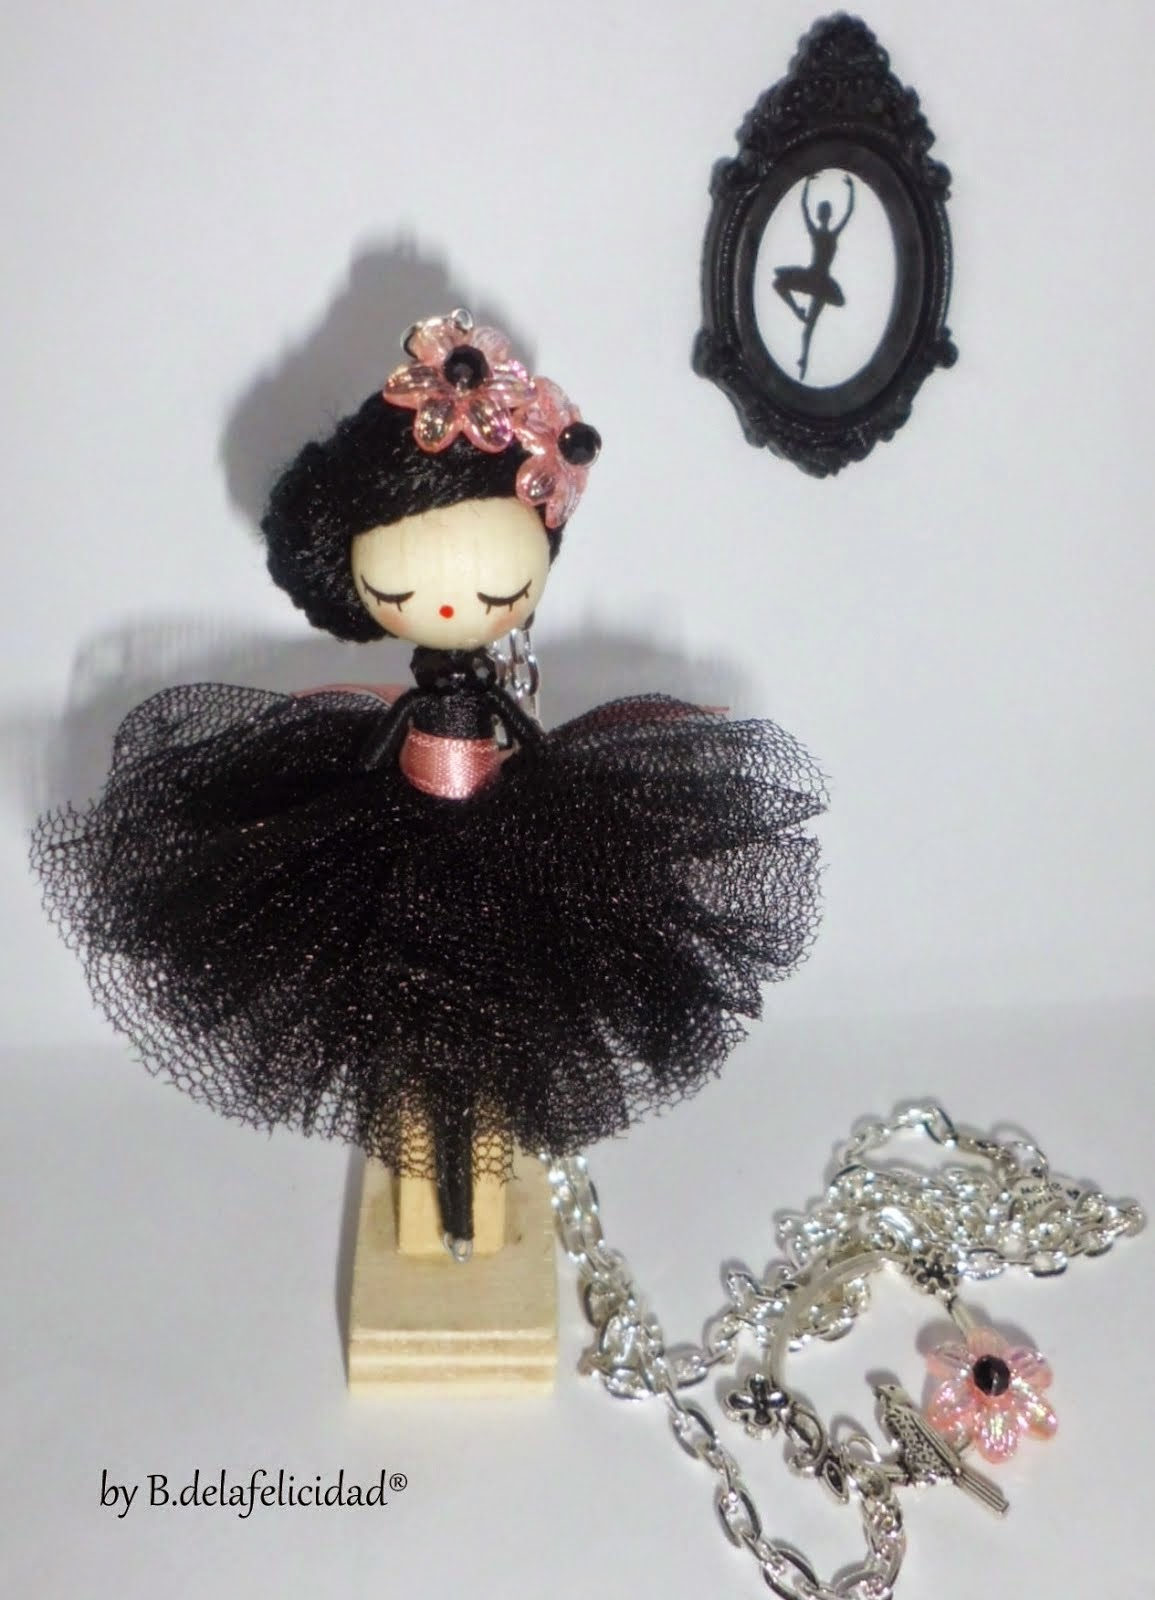 Doll necklace/Collar de muñeca